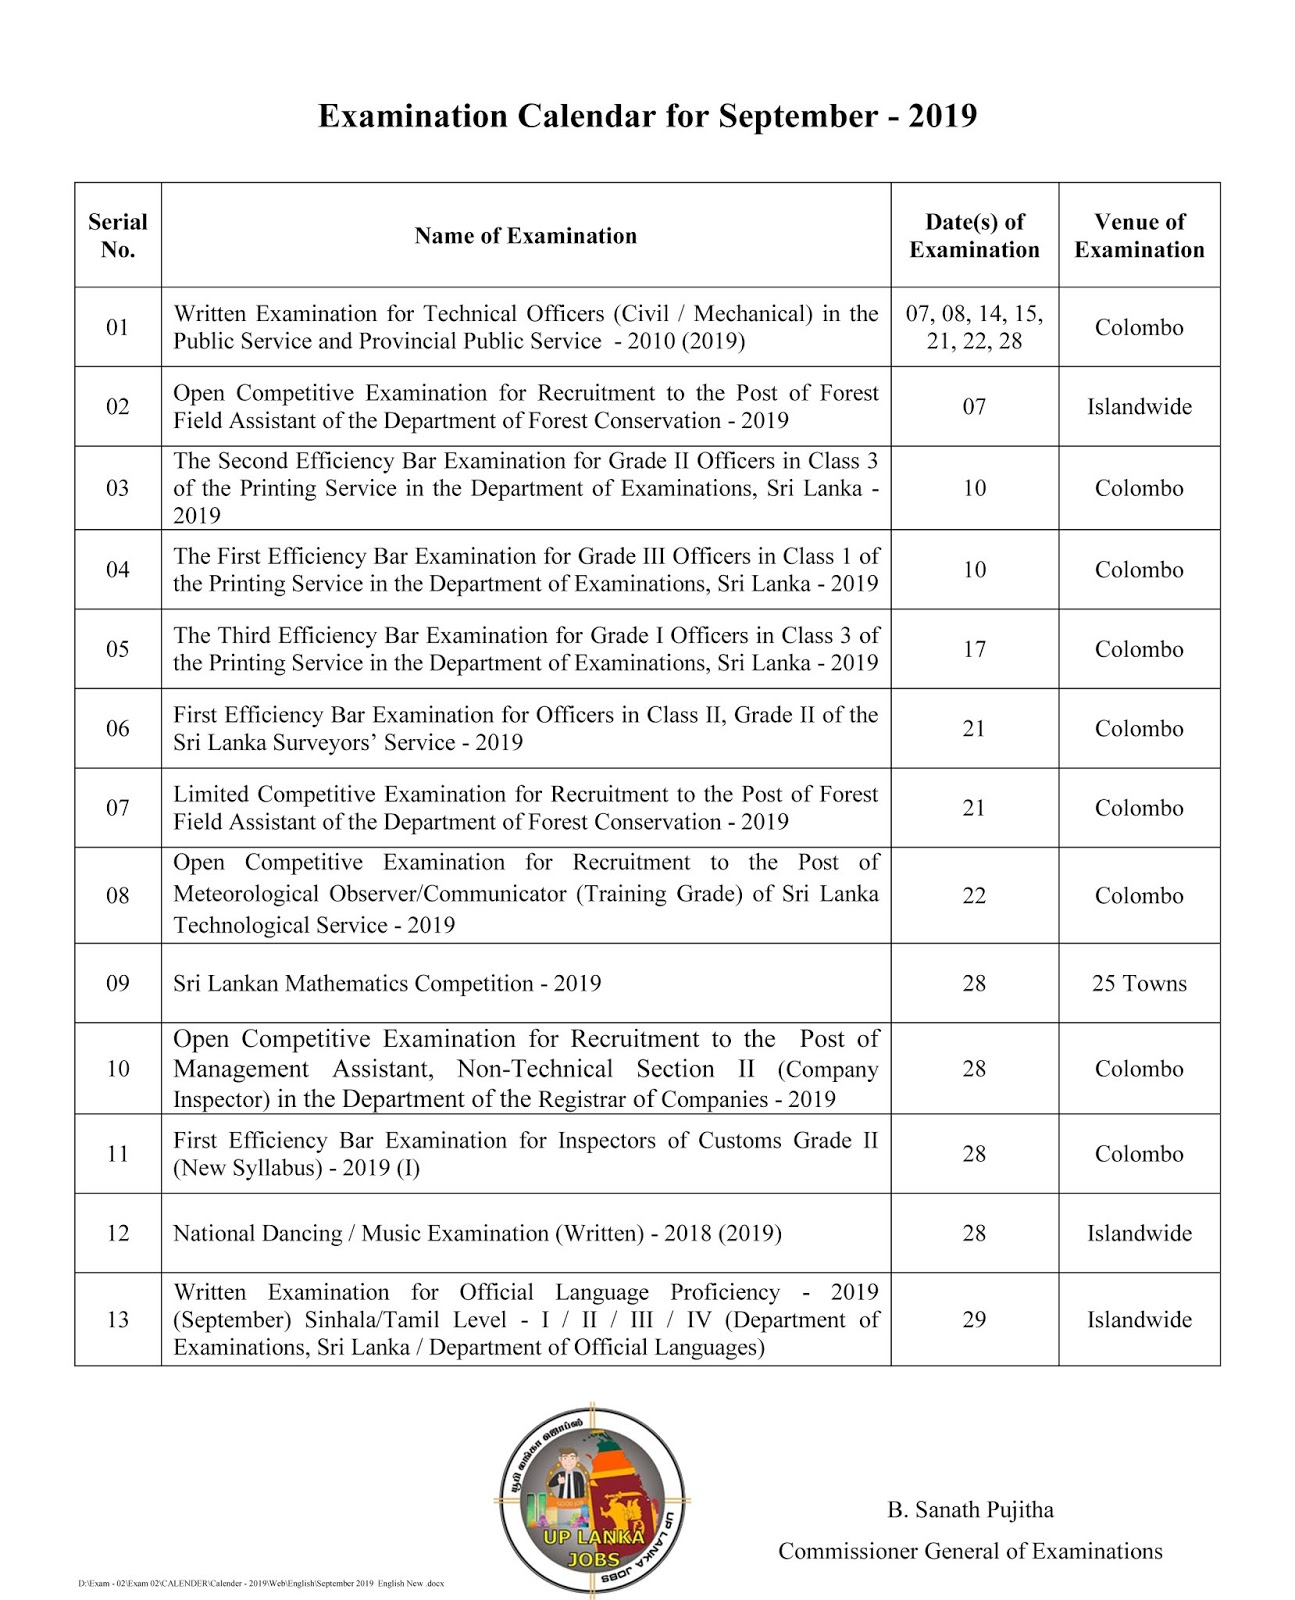 SRI LANKA GOVERNMENT VACANCY EXAMINATION CALENDAR FOR